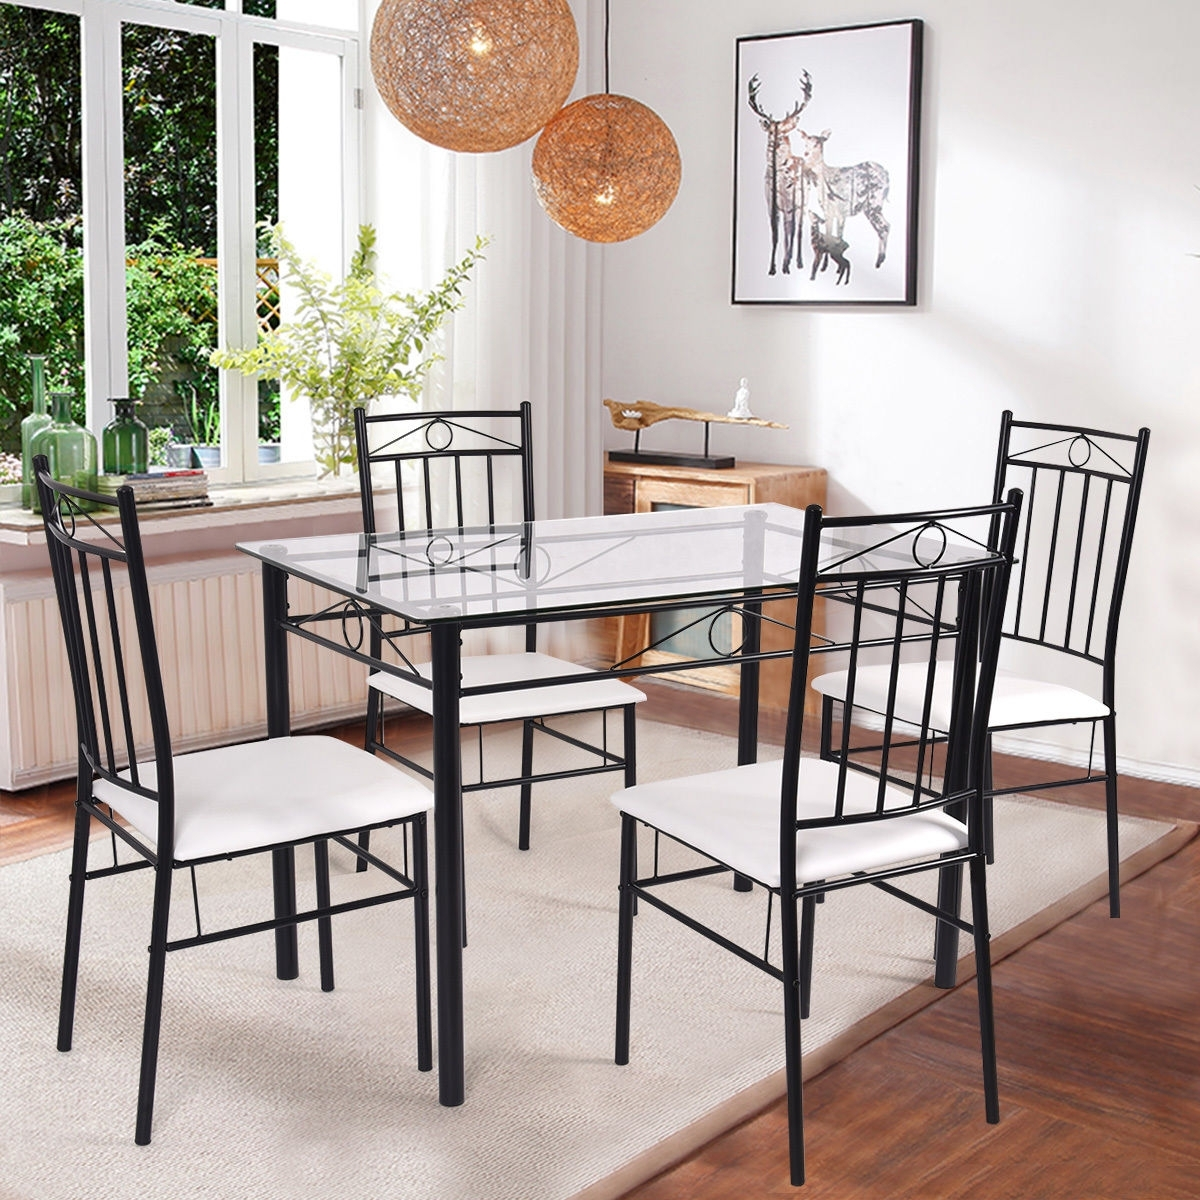 Popular Black Glass Dining Tables And 4 Chairs Pertaining To Costway 5 Piece Dining Set Glass Metal Table And 4 Chairs Kitchen Breakfast  Furniture (Gallery 13 of 25)